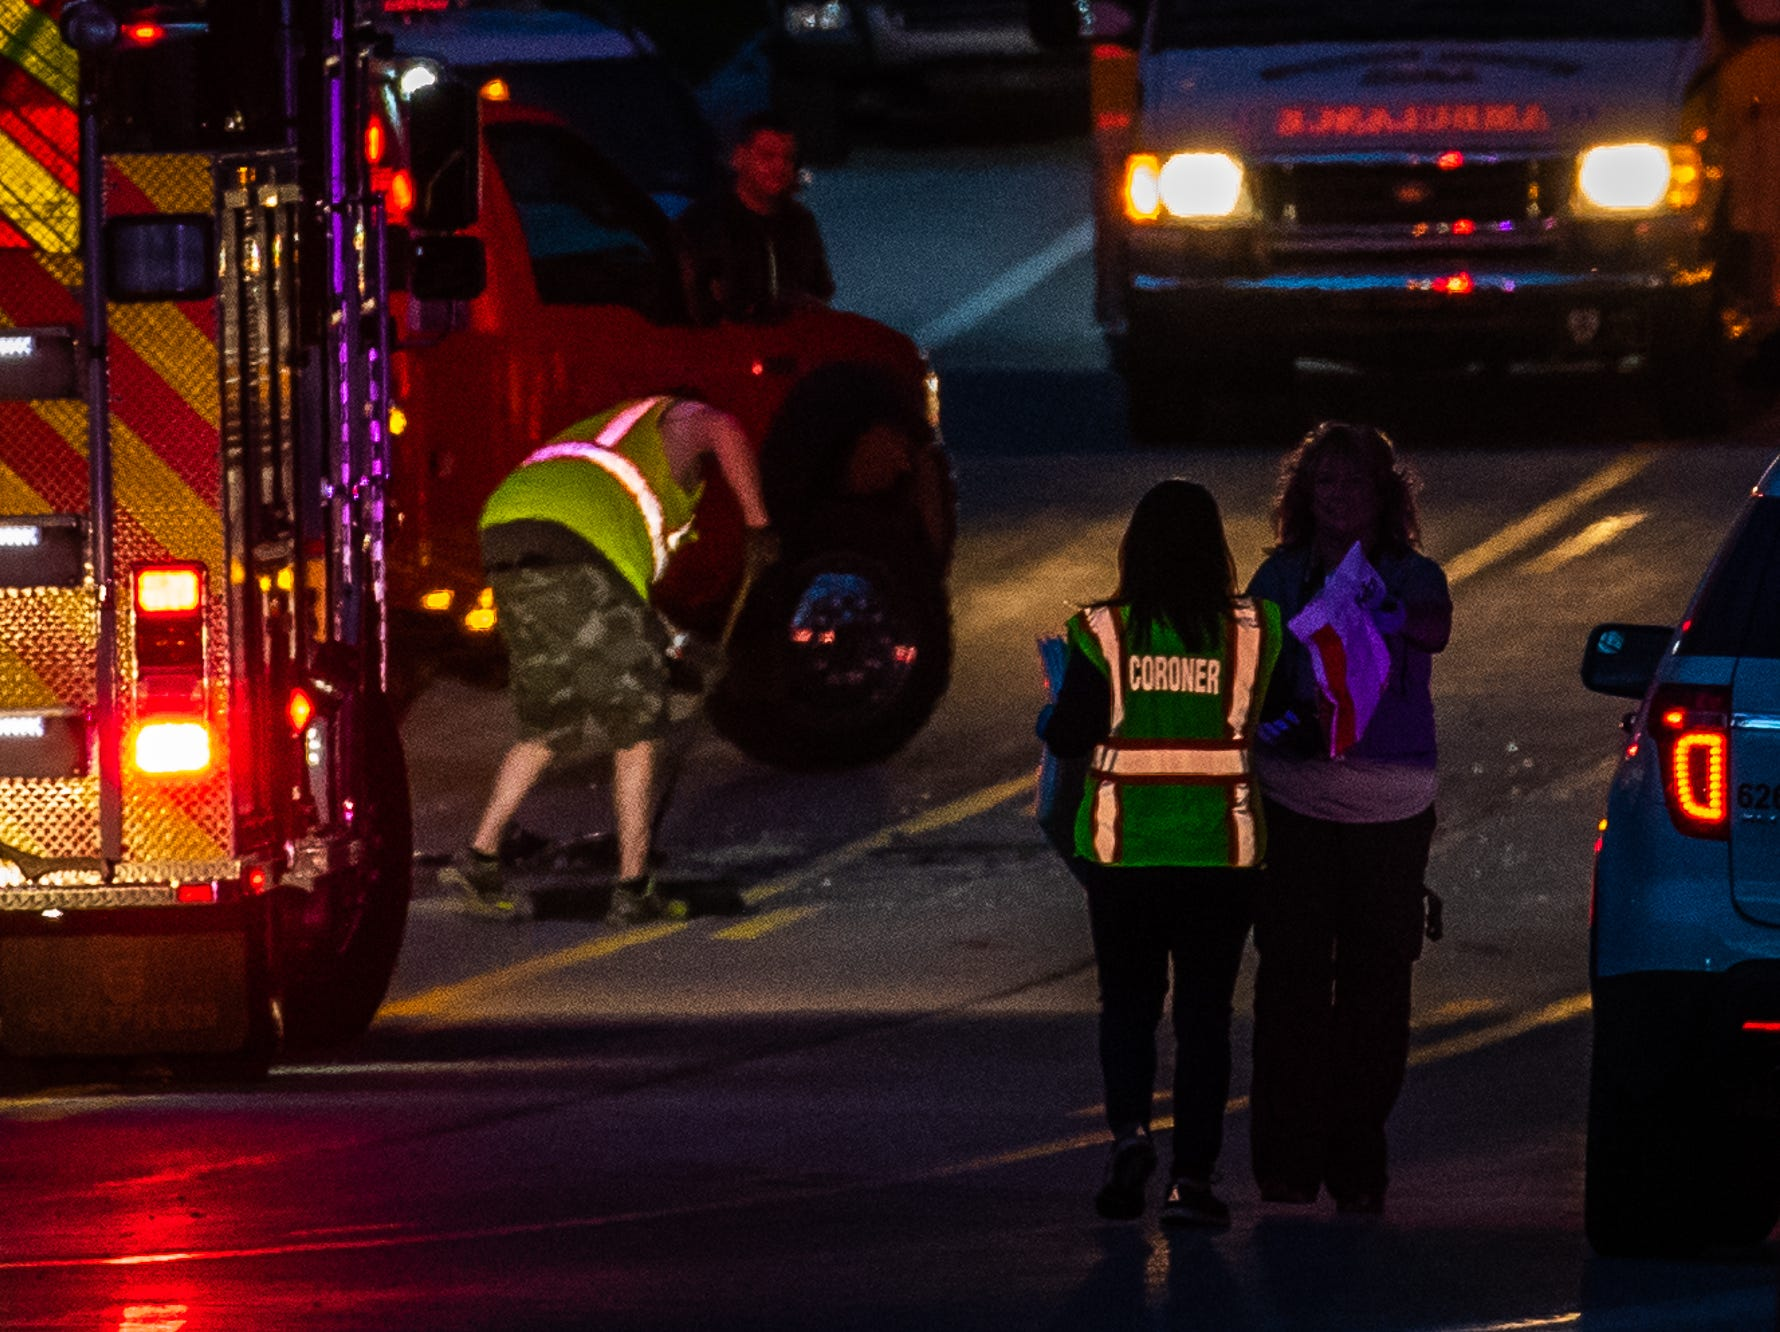 A York County Coroner works at the scene of a fatal crash on the 7300 block of Lincoln Highway, Saturday, April 20, 2019, in Paradise Township.